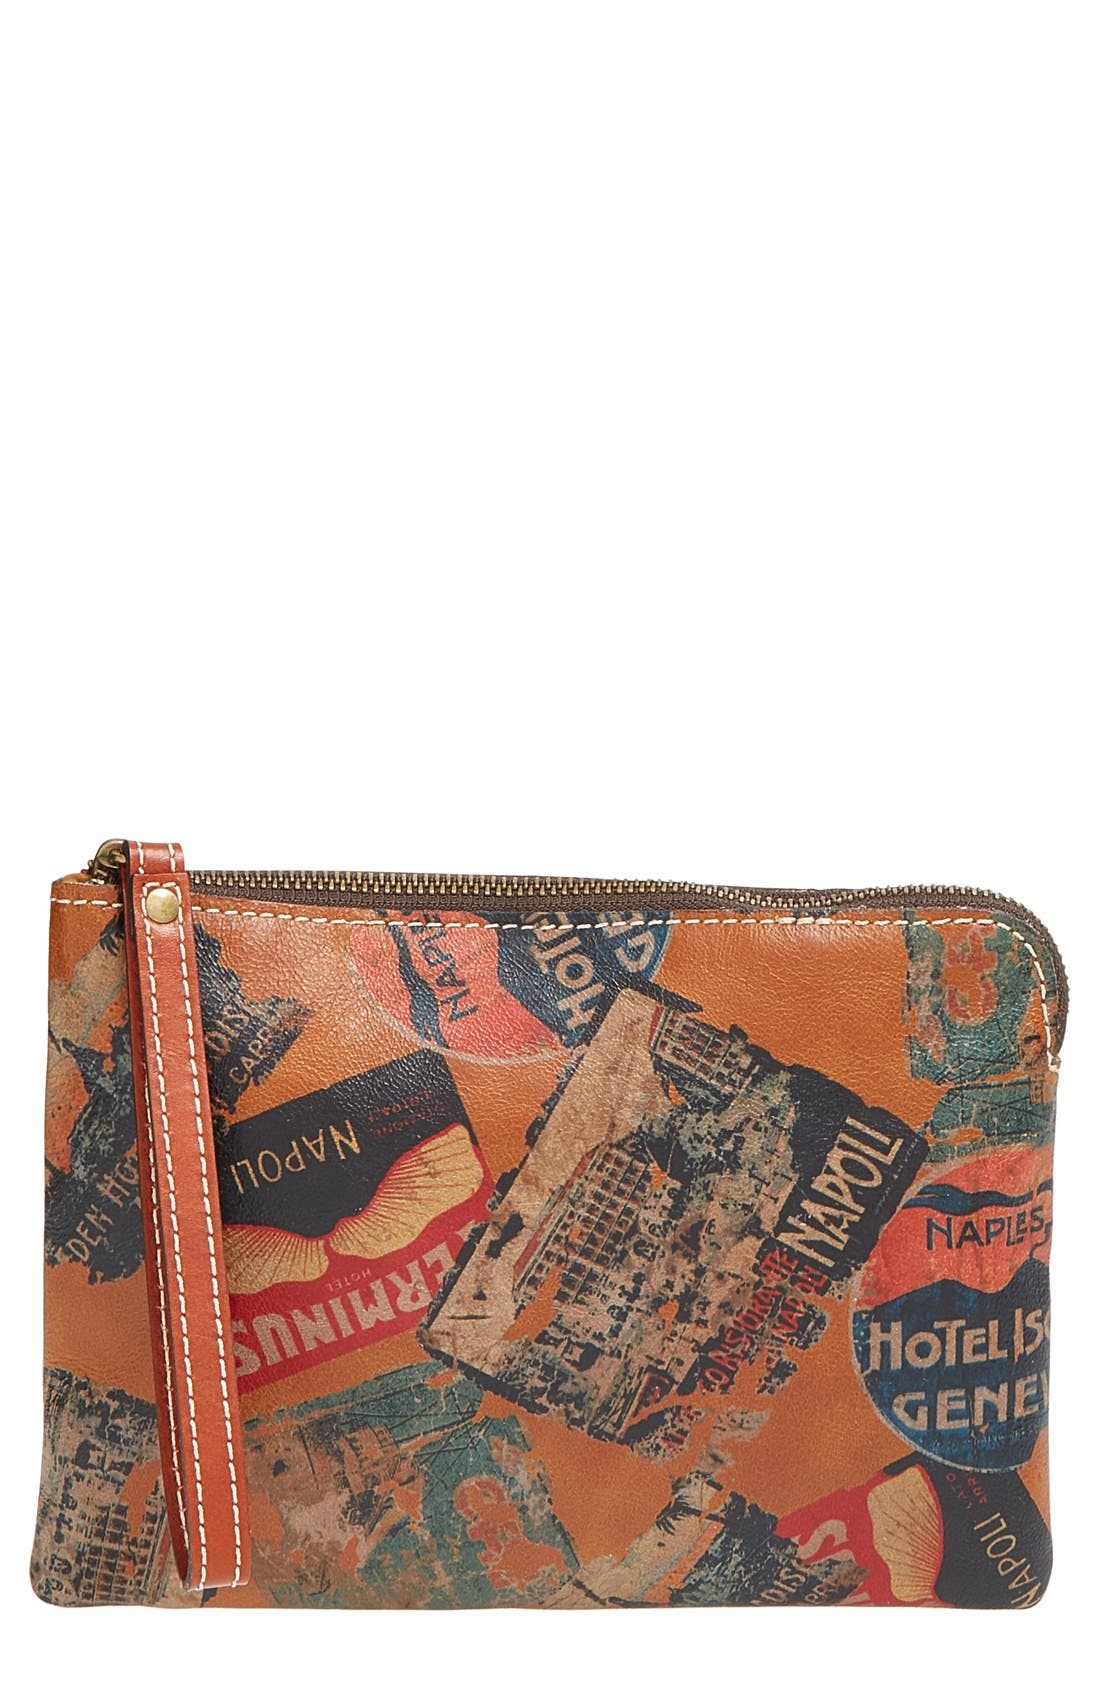 'Cassini' Wristlet,                             Main thumbnail 1, color,                             200